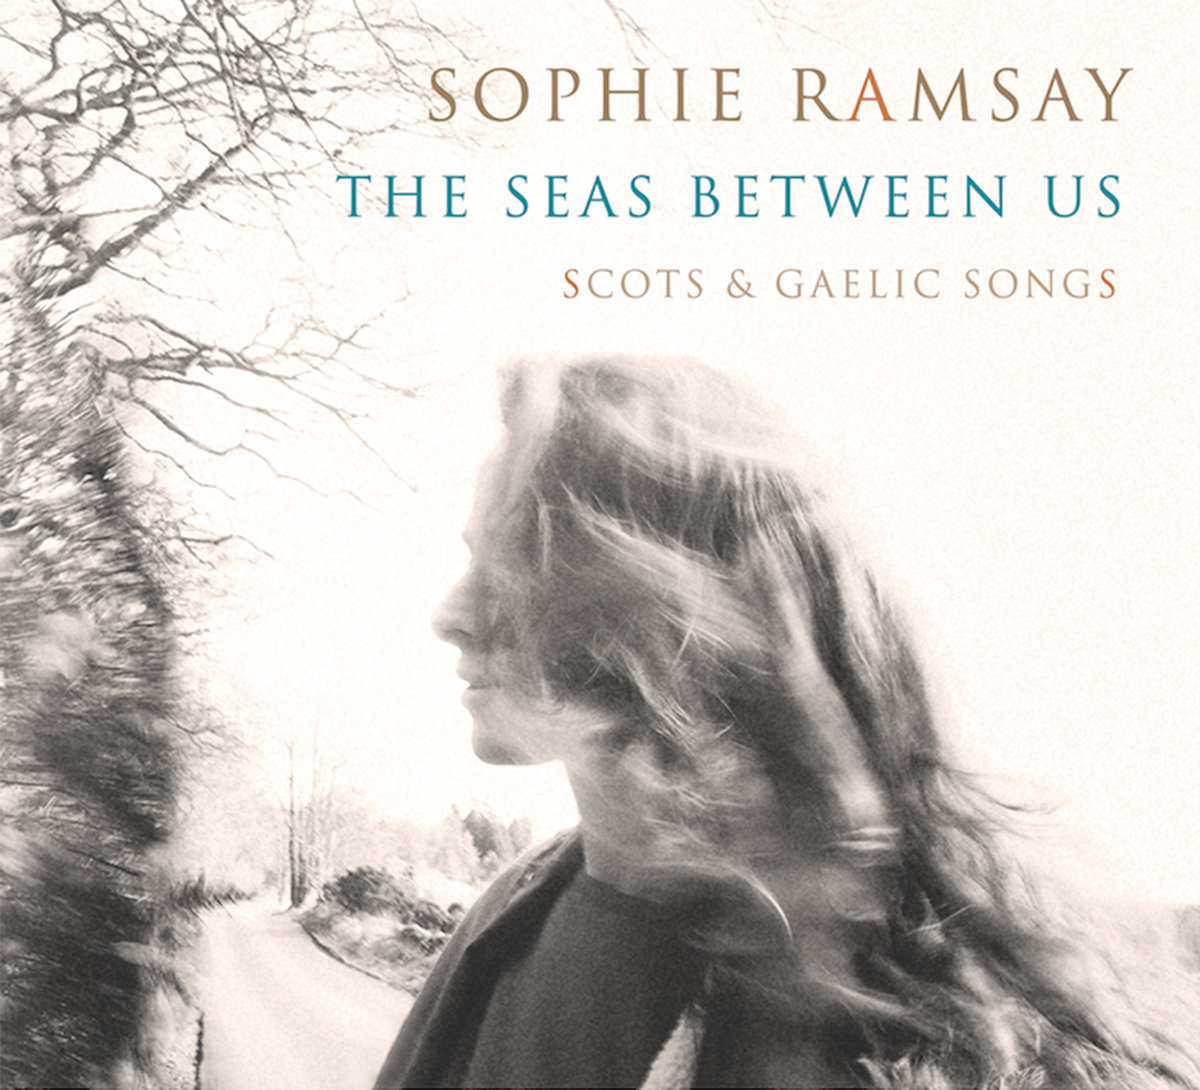 Image result for sophie ramsay the seas